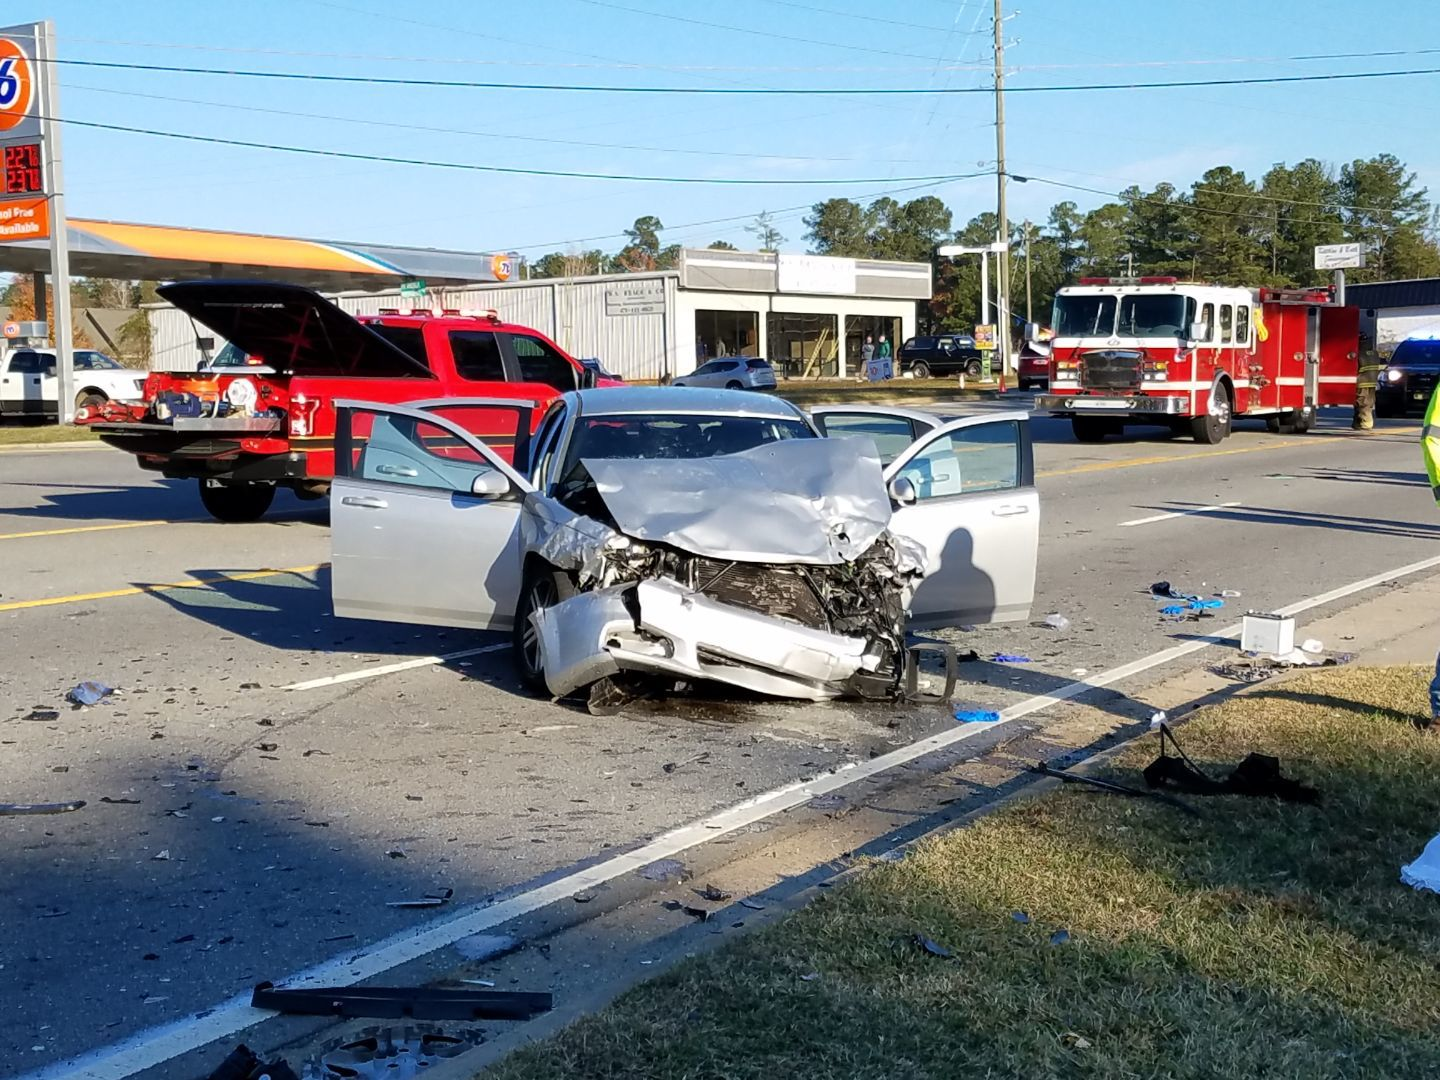 Injured In Accident Update Five Injured Child 6 Killed In Two Car Collision News